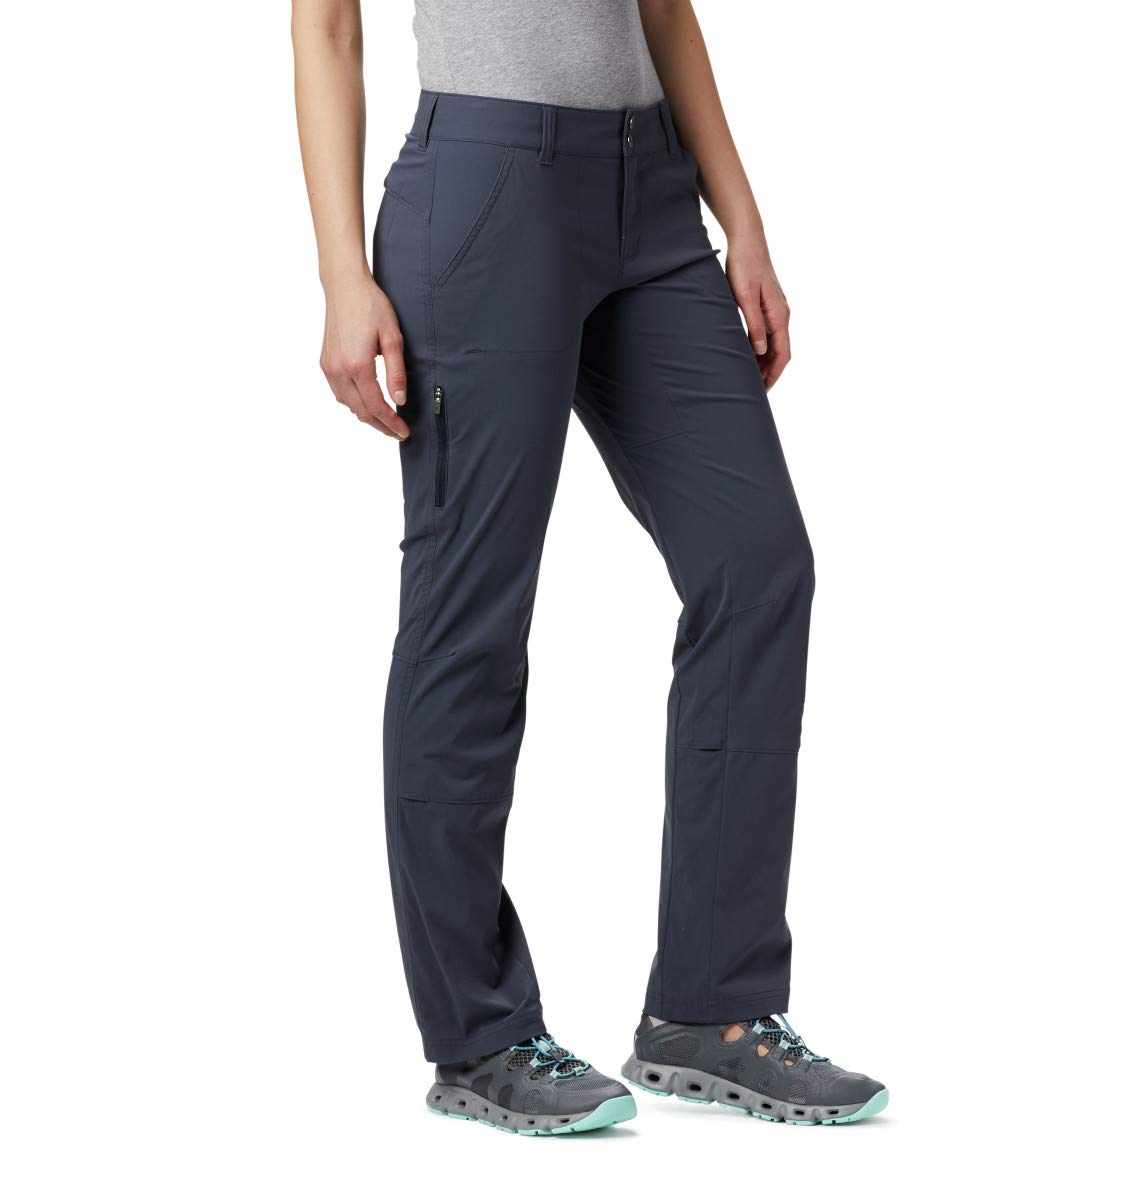 Columbia Women's Saturday Trail Pant,India Ink,14 Short by Columbia